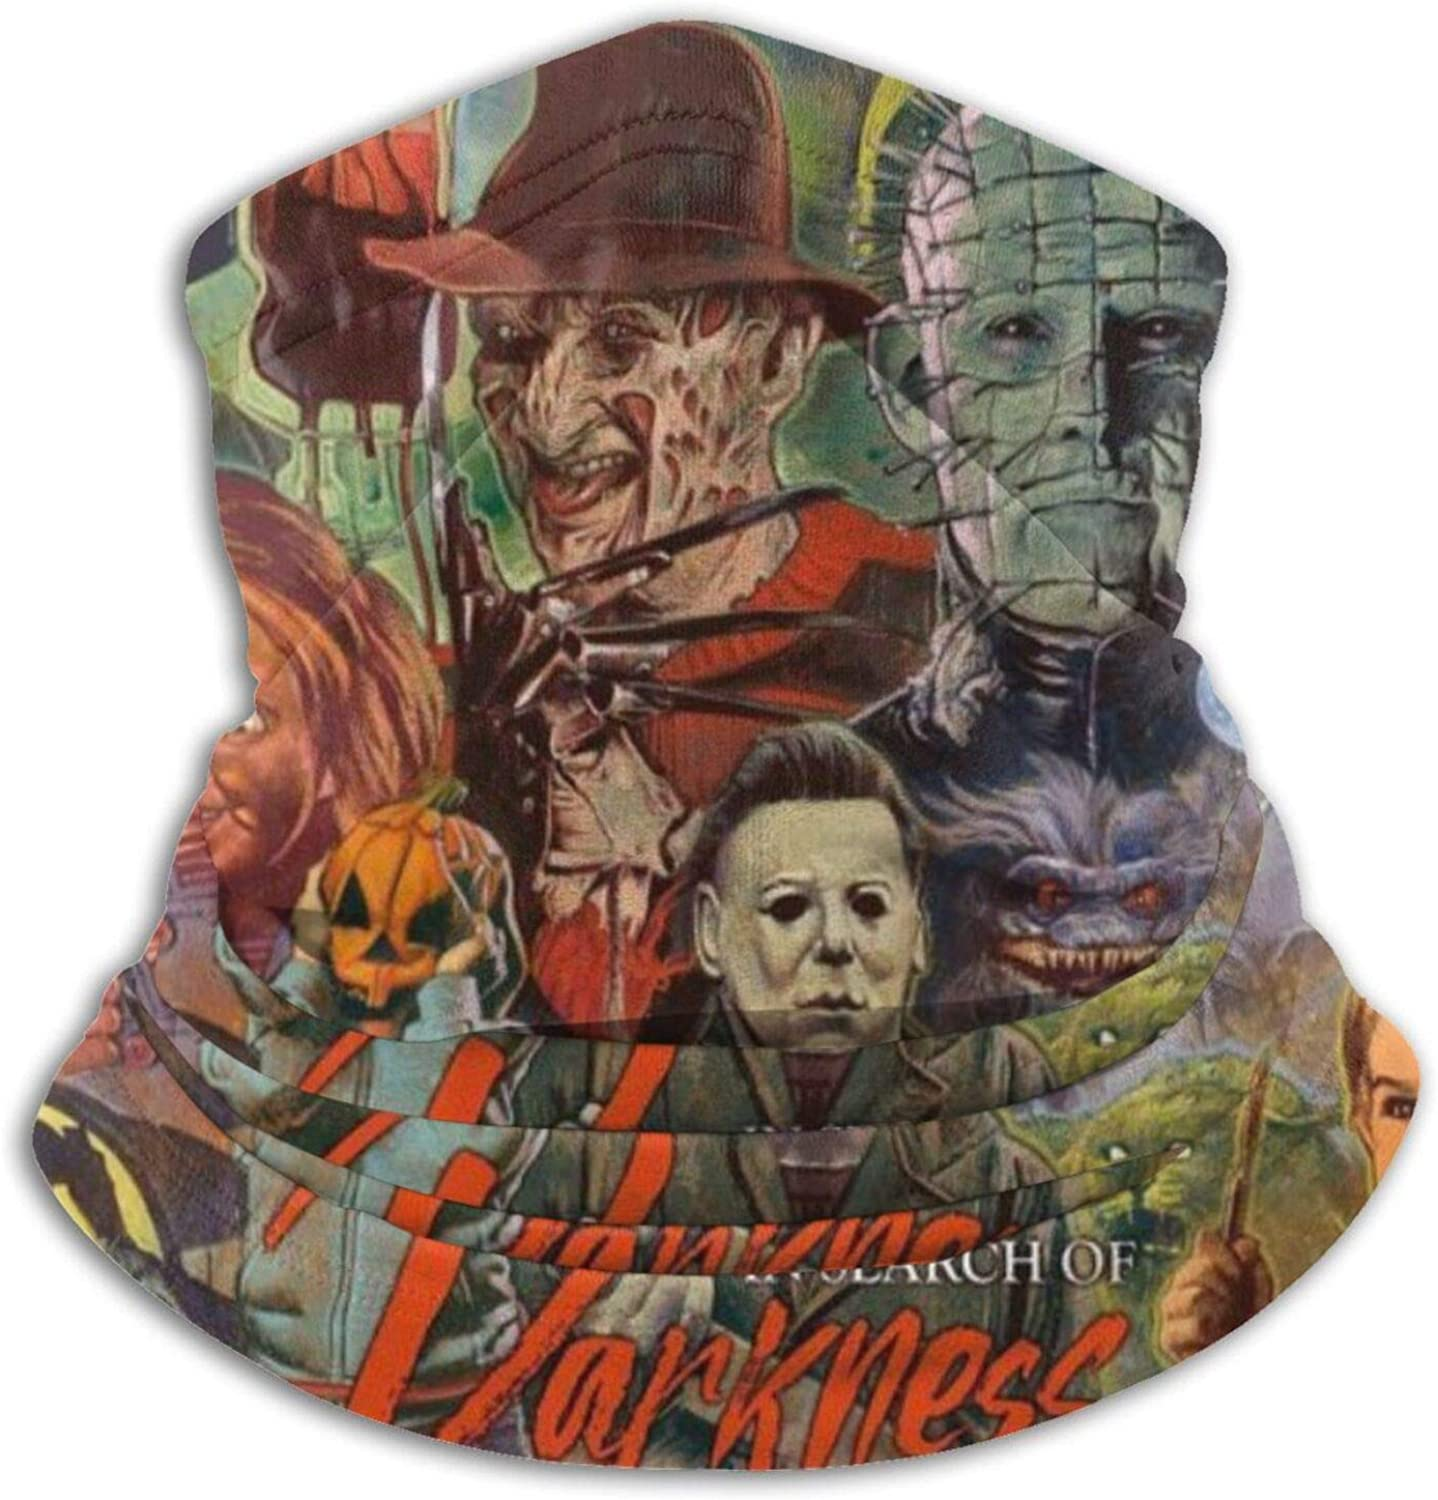 ETONKIDD Jason Voor-Hees Fre-Ddy Krue-Ger Mich-Ael My-Ers Face Mask Neck Gaiter Magic Scarf